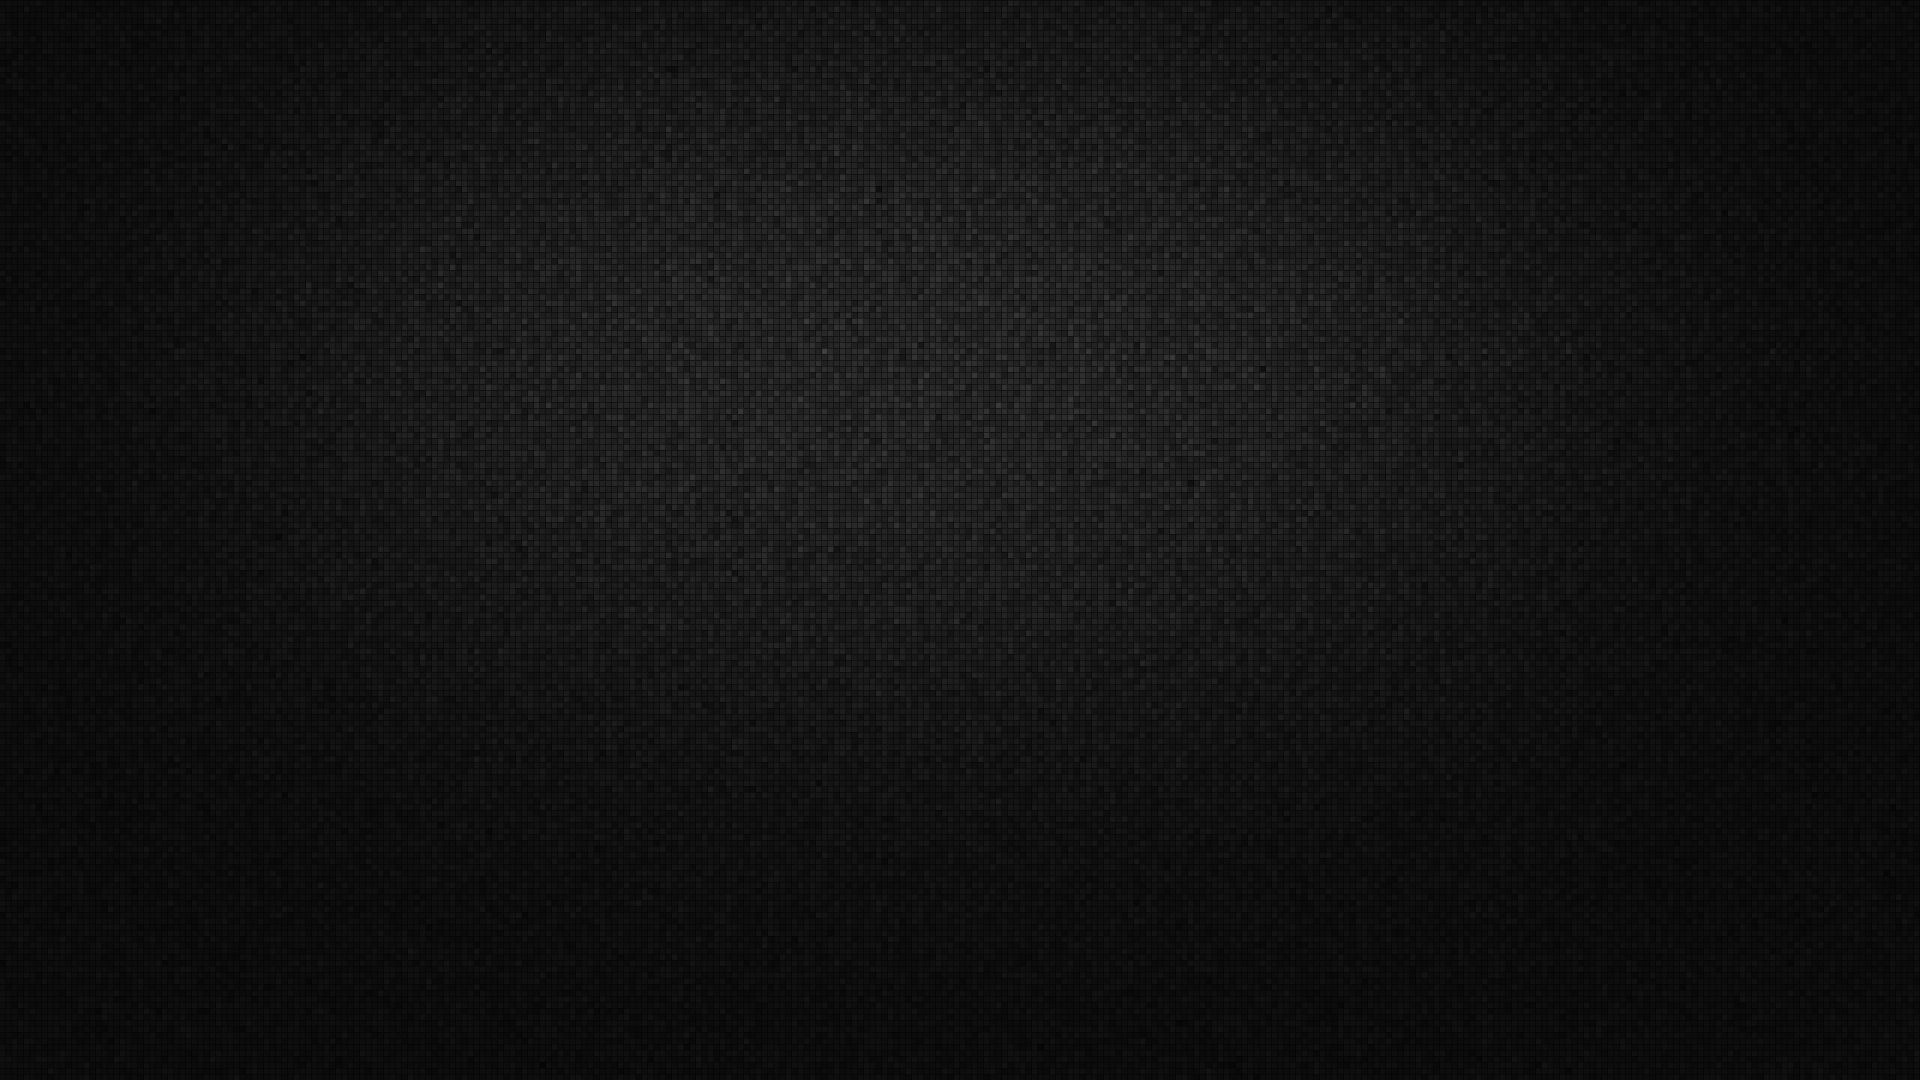 Abstract   Black Wallpaper 1920x1080